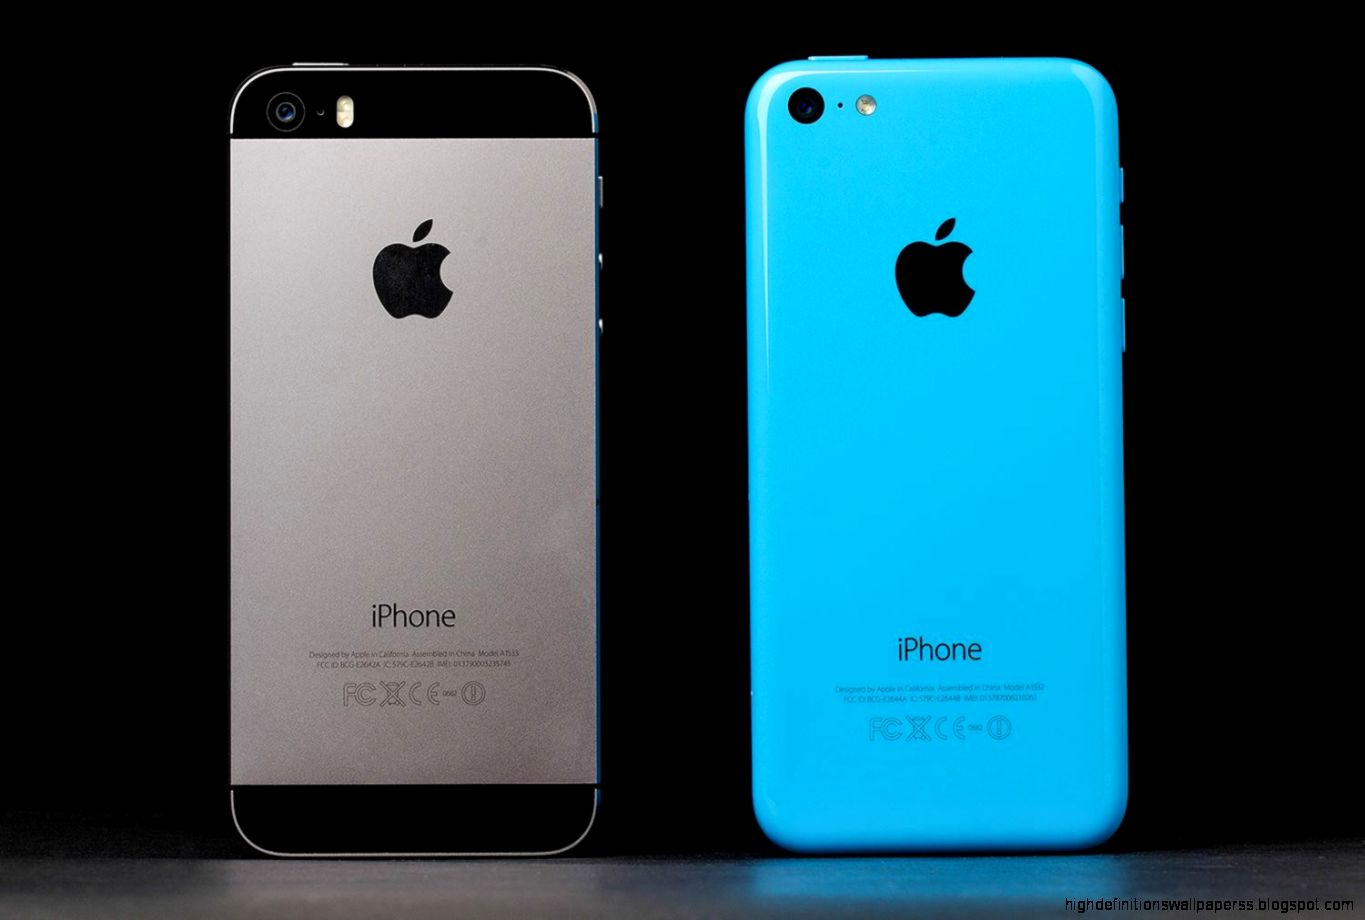 apple iphone 5c vs 5s grey wallpaper | high definitions wallpapers